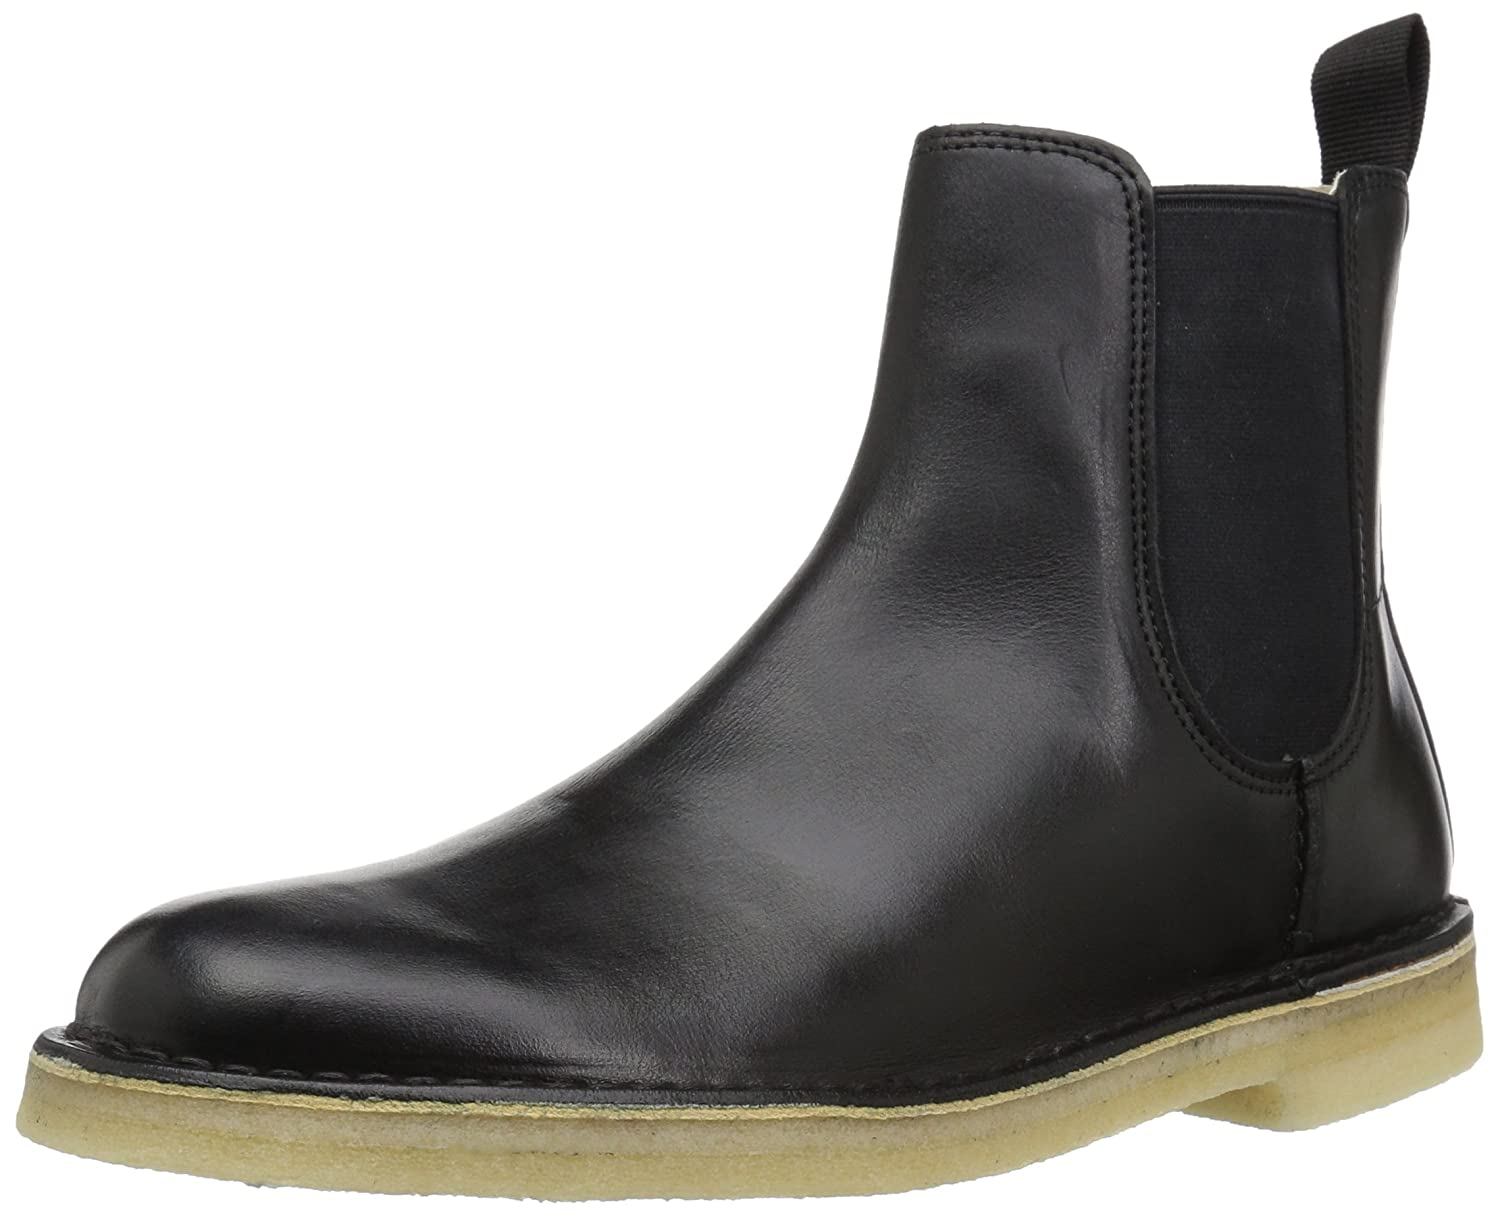 CLARKS Men's Desert Peak Chelsea Boot 26128730